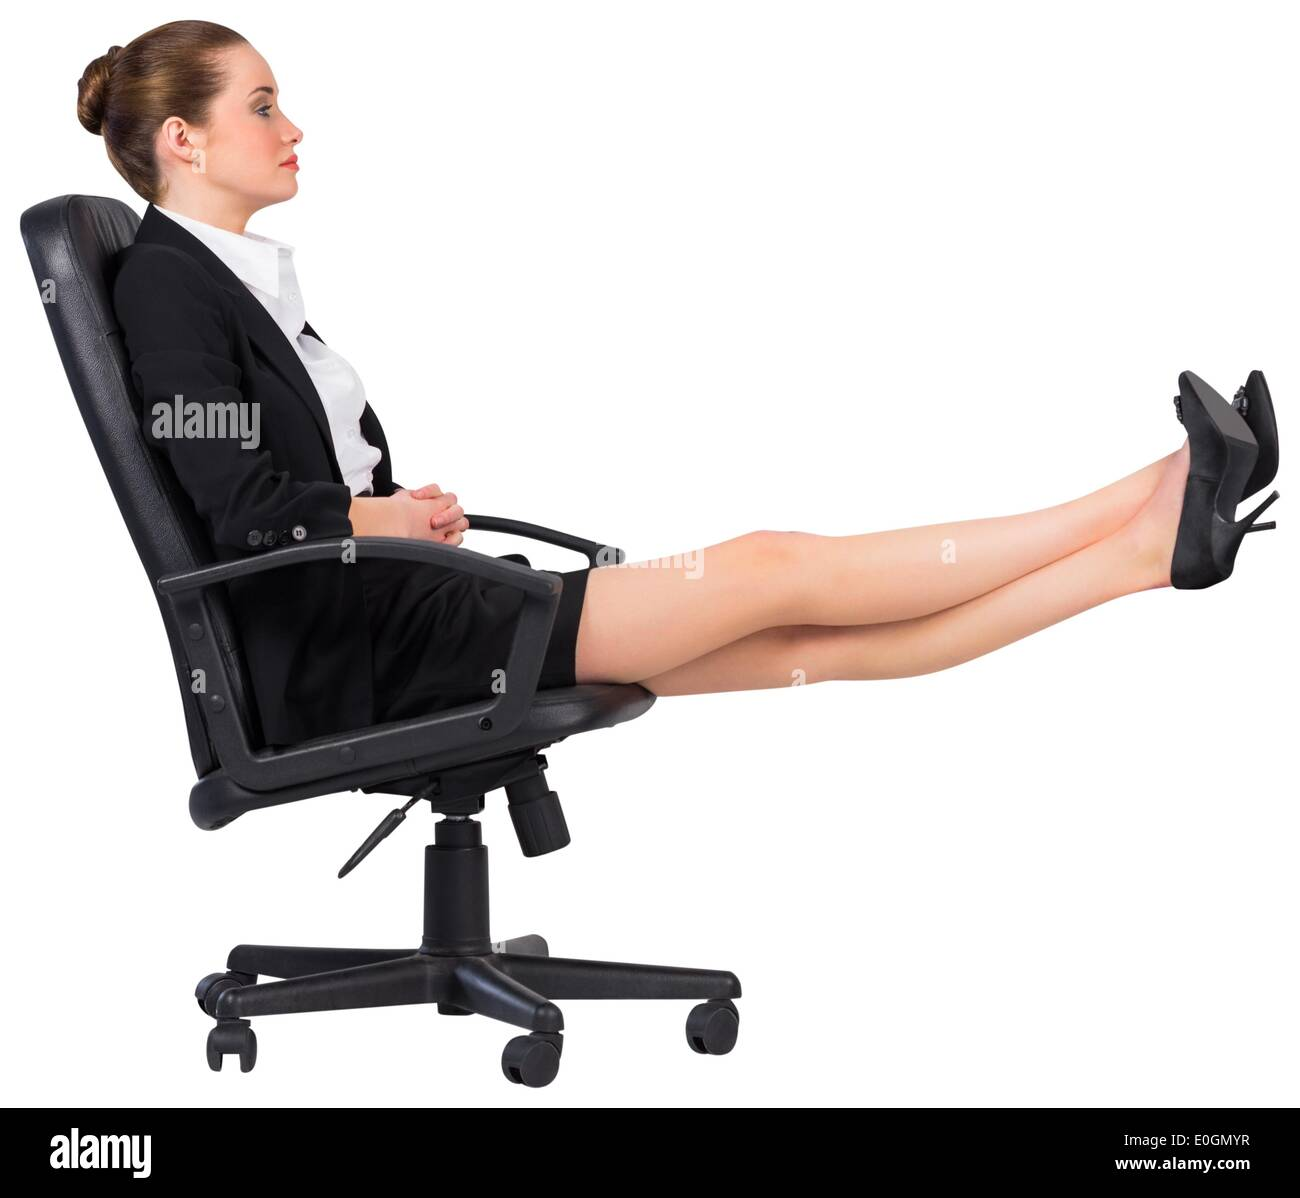 swivel chair feet blu dot businesswoman sitting on with up stock photo